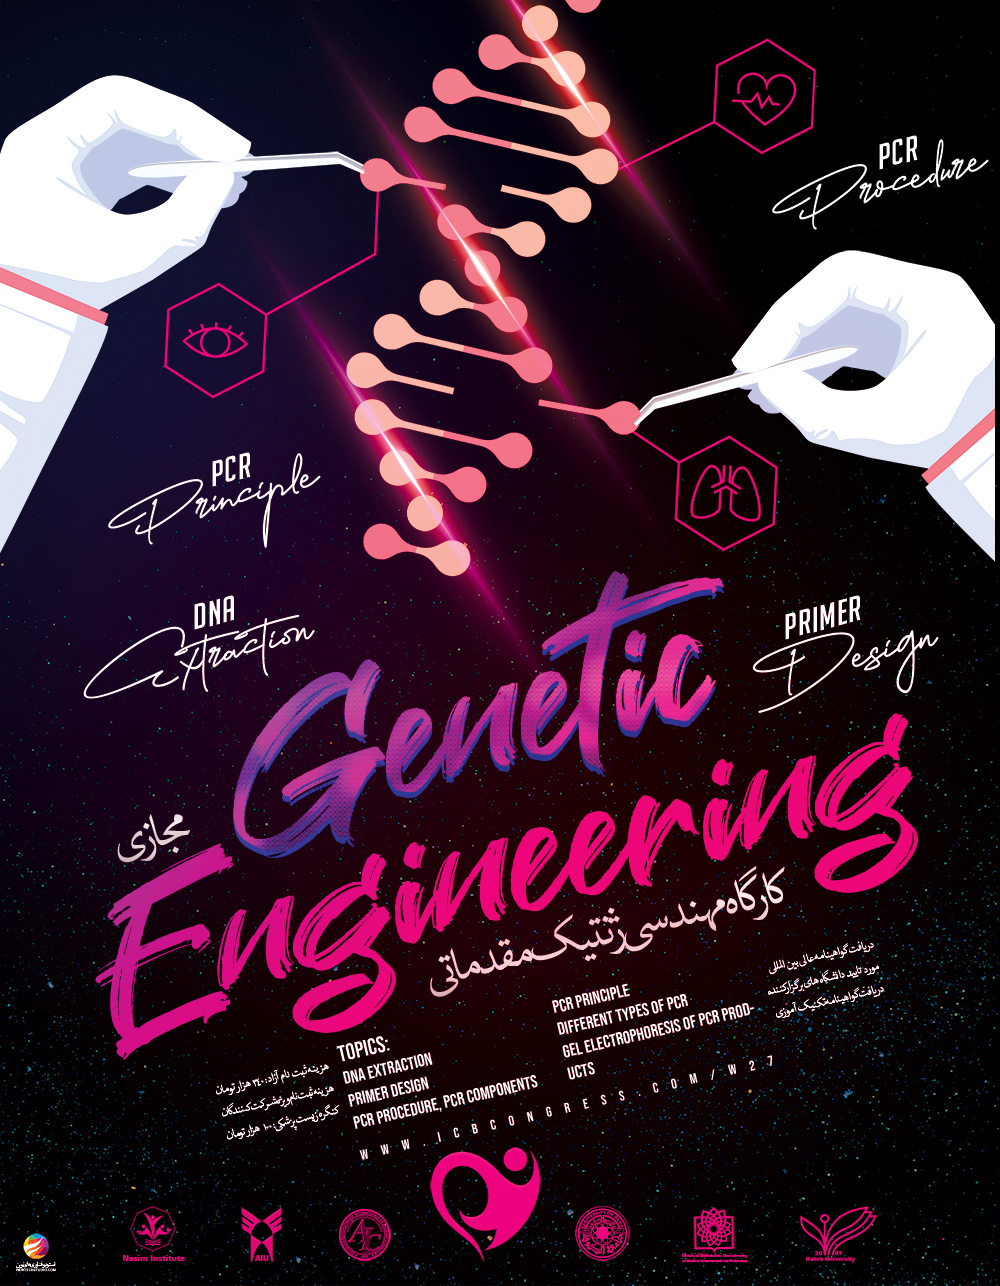 Genetic Engineering (Preliminary) Workshops